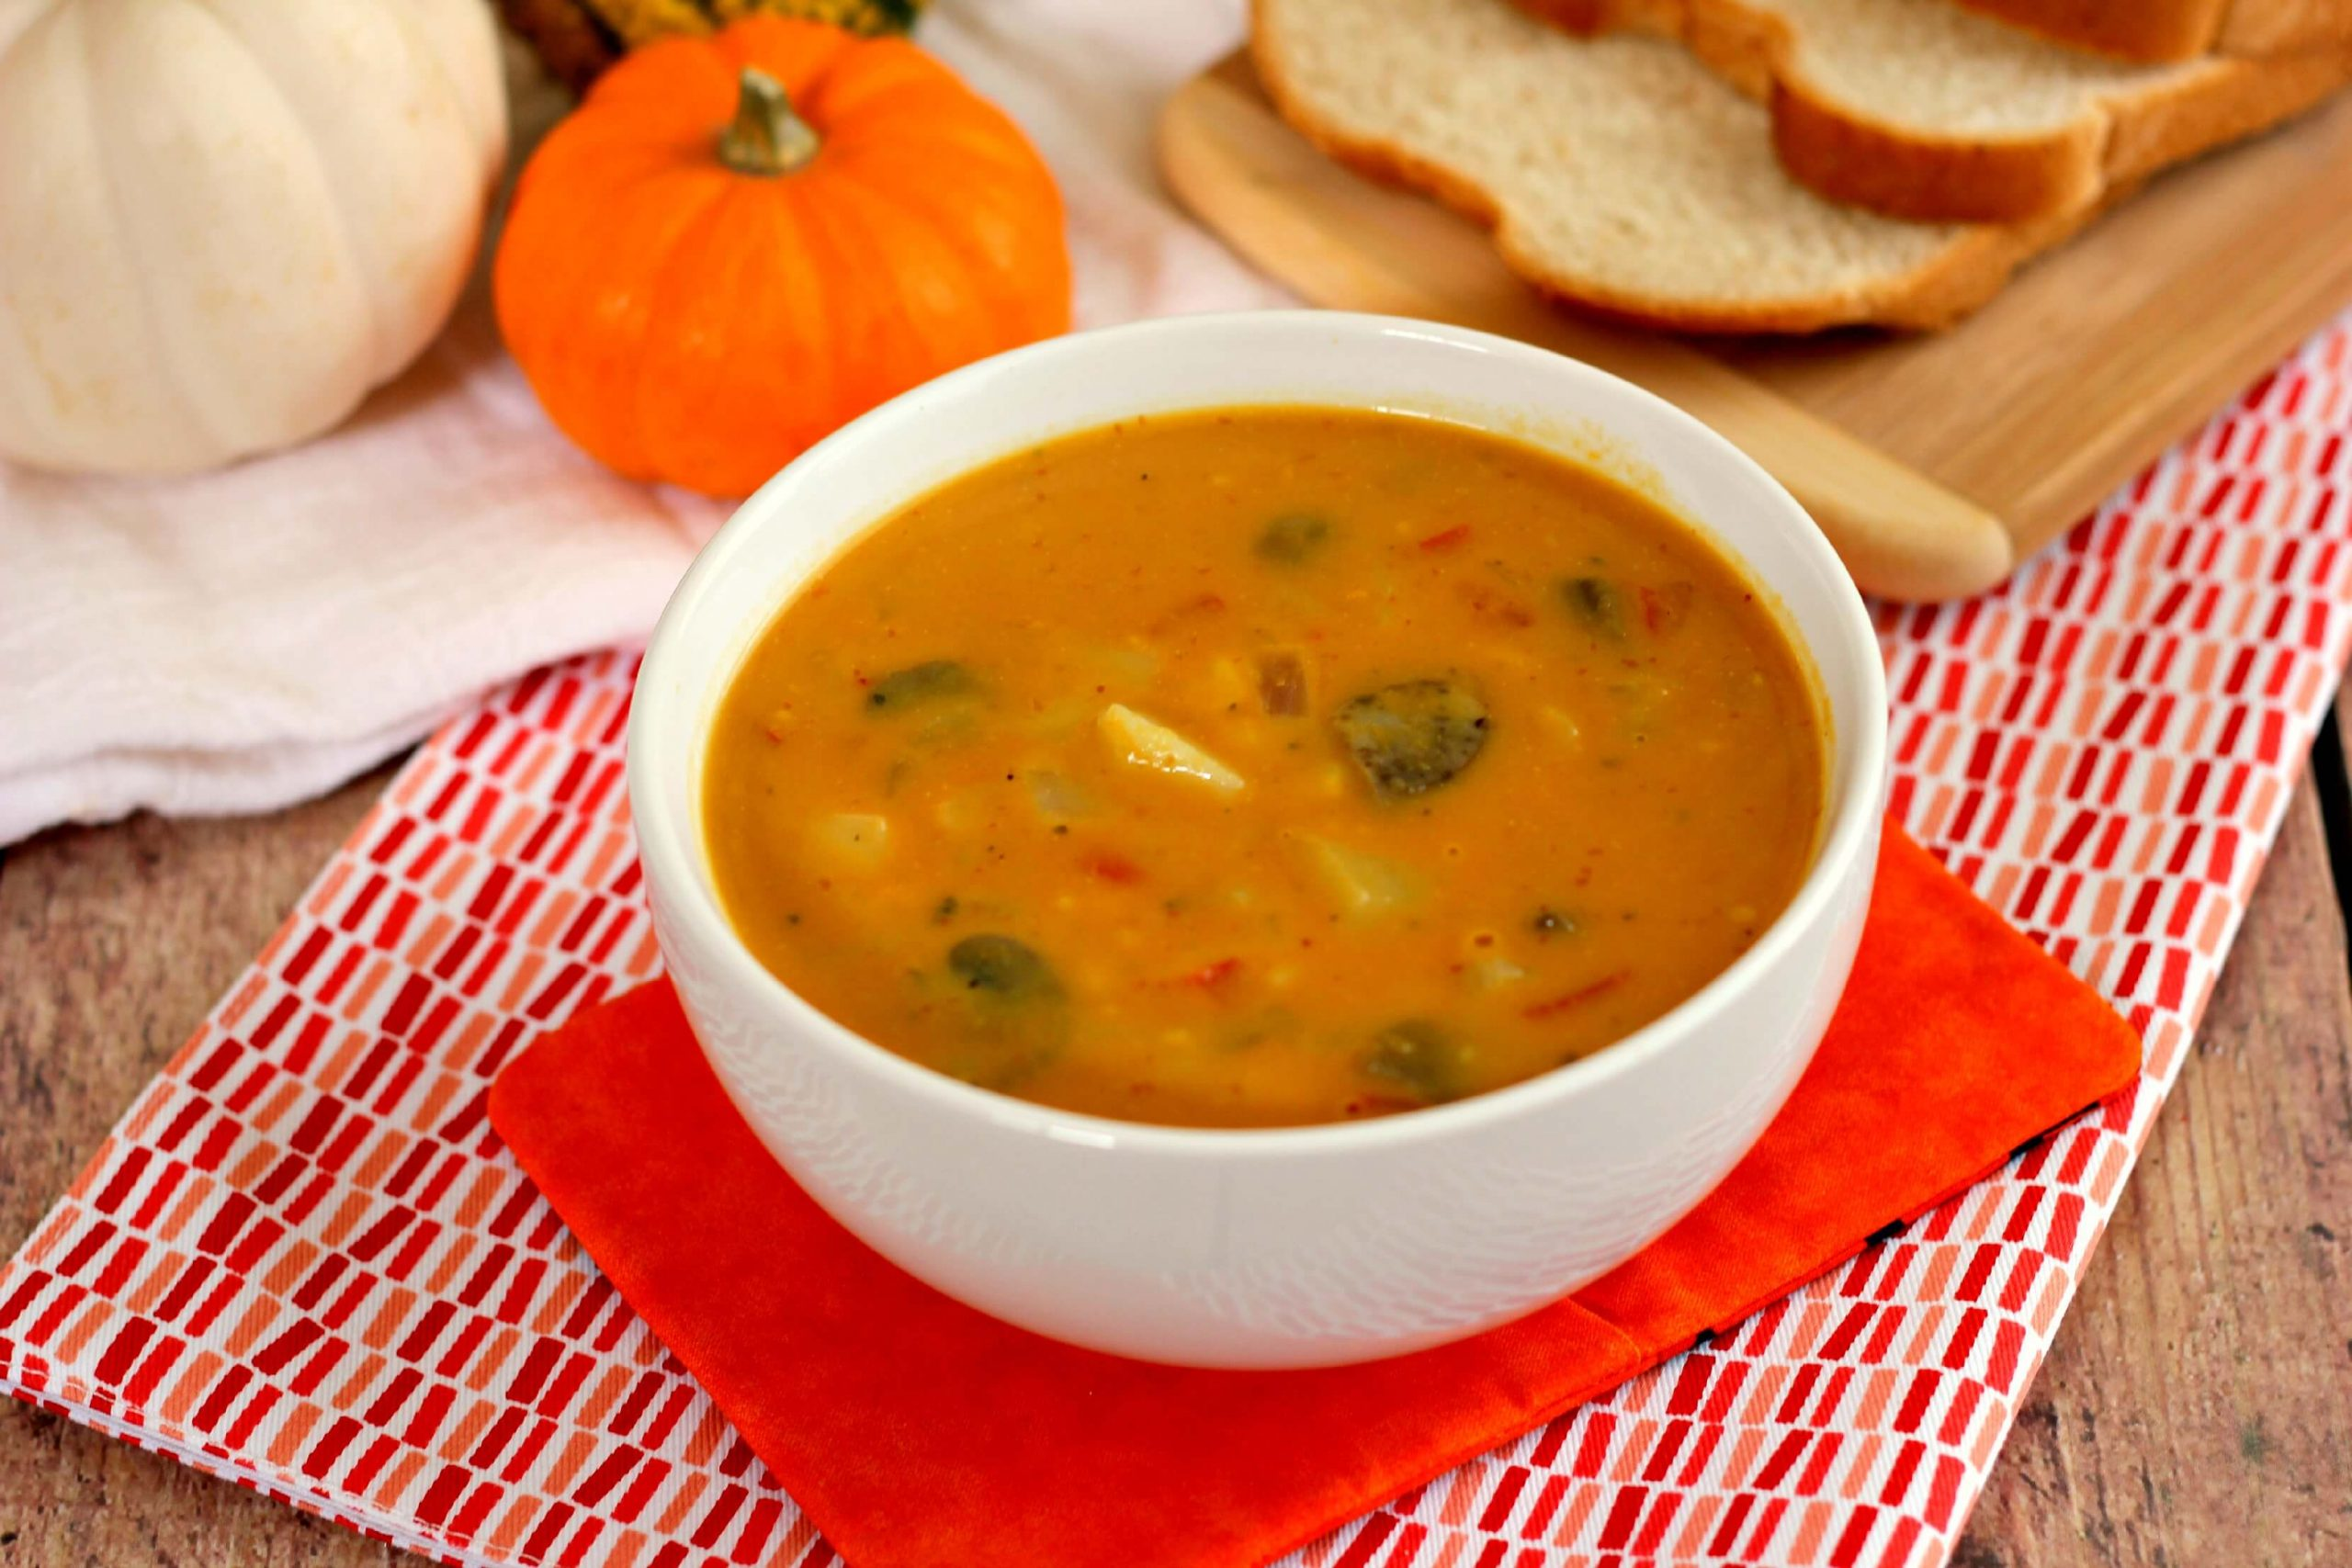 This Creamy Pumpkin Soup is full of pumpkin flavor, filled with vegetables, and healthy.